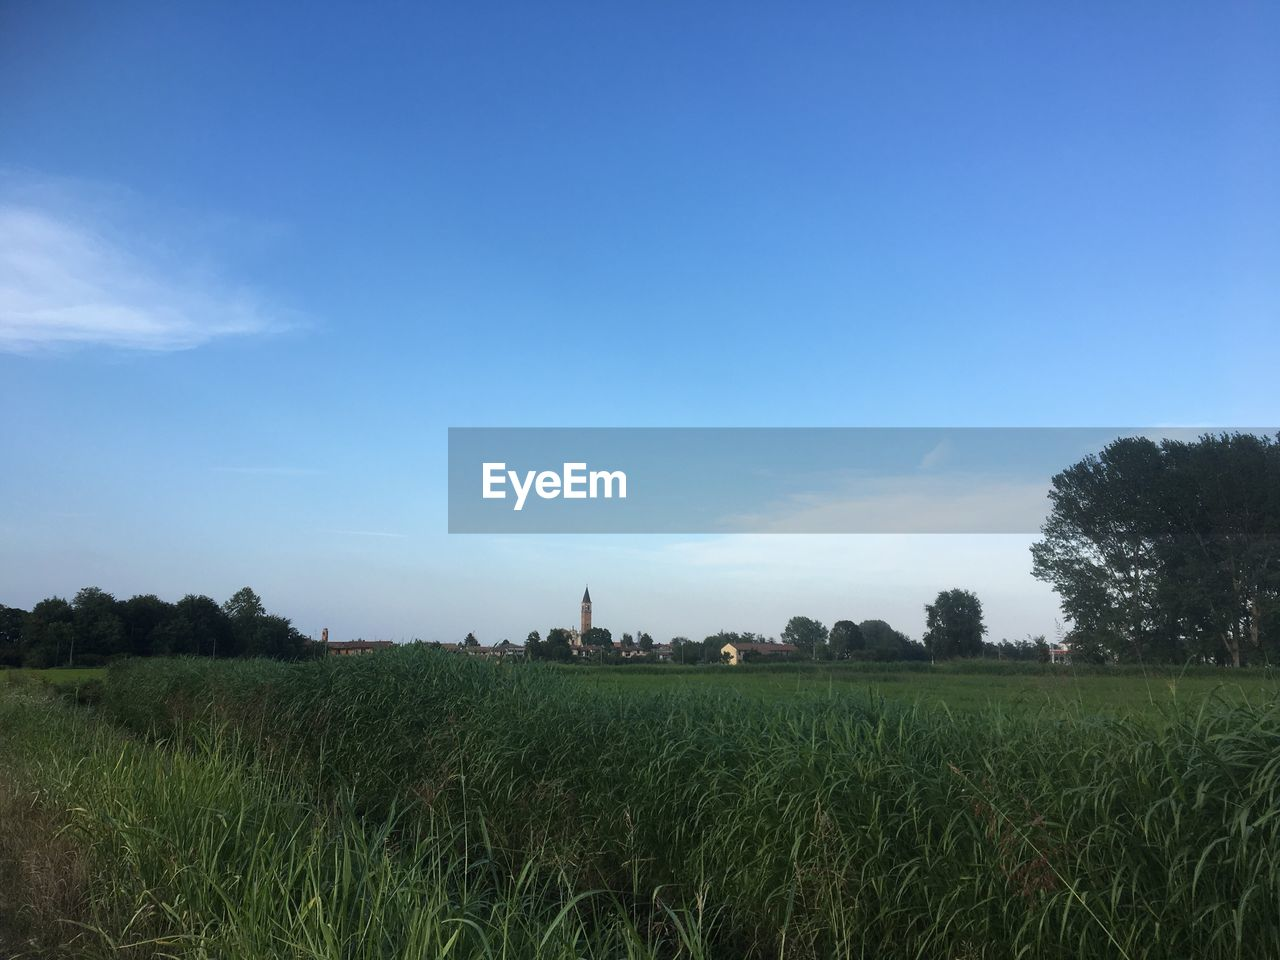 plant, sky, field, landscape, land, environment, growth, grass, scenics - nature, tree, tranquility, tranquil scene, agriculture, beauty in nature, rural scene, nature, green color, day, farm, crop, no people, outdoors